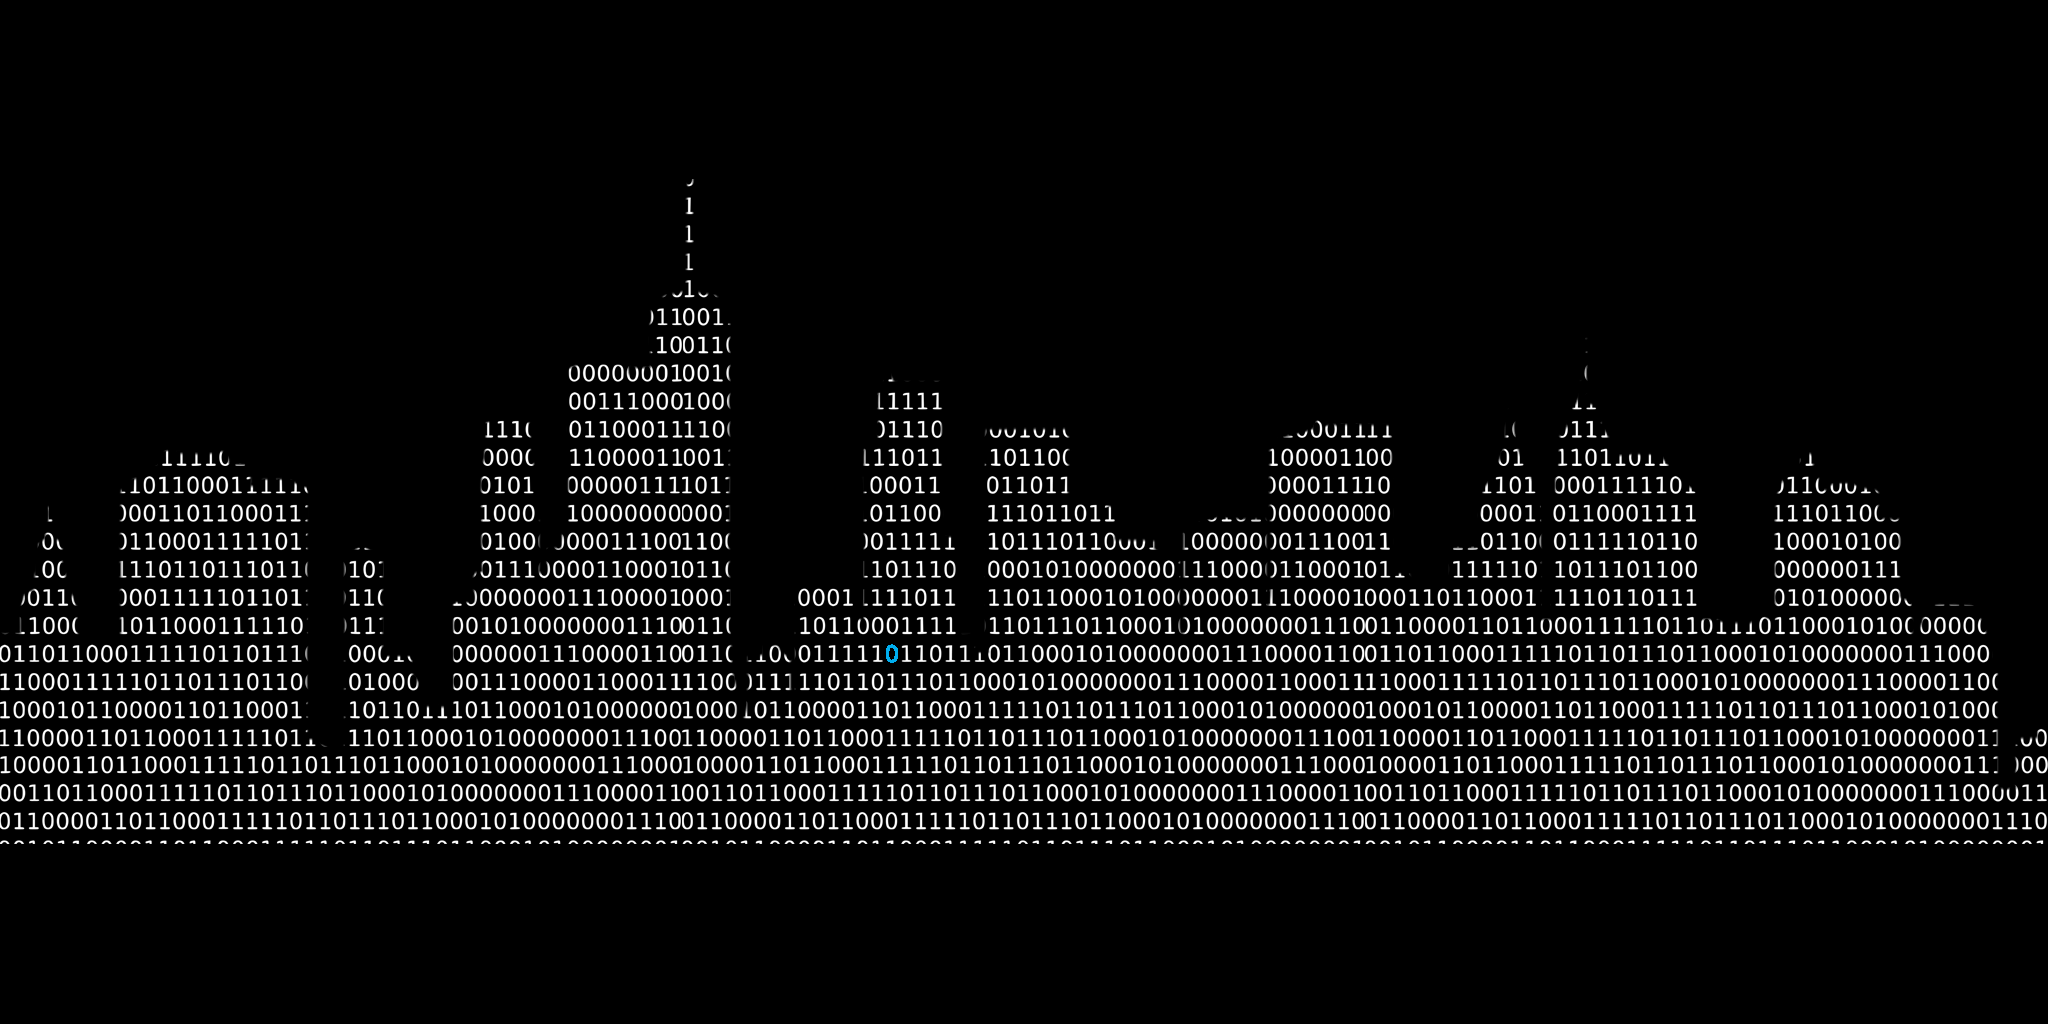 On the need of a common framework to manage smart city data